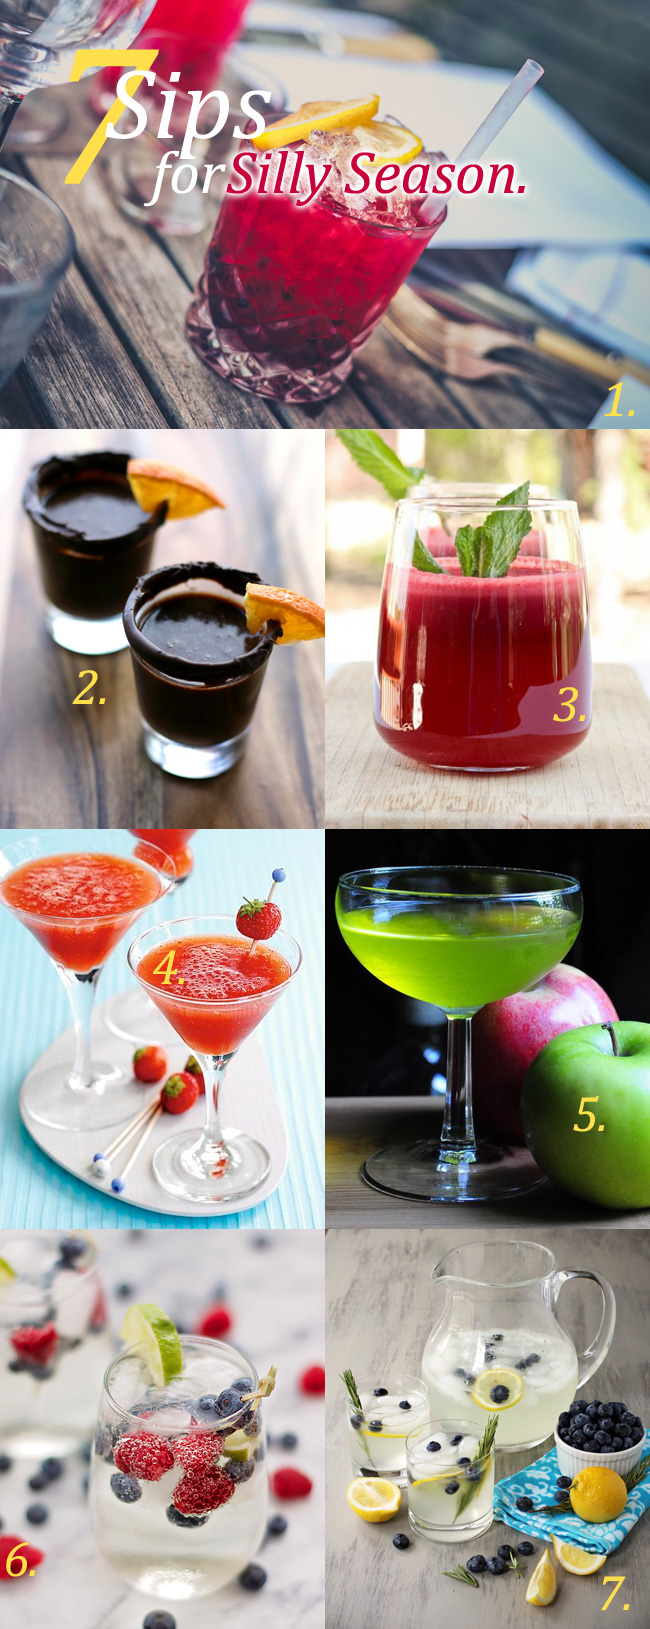 7 Sips for Silly Season